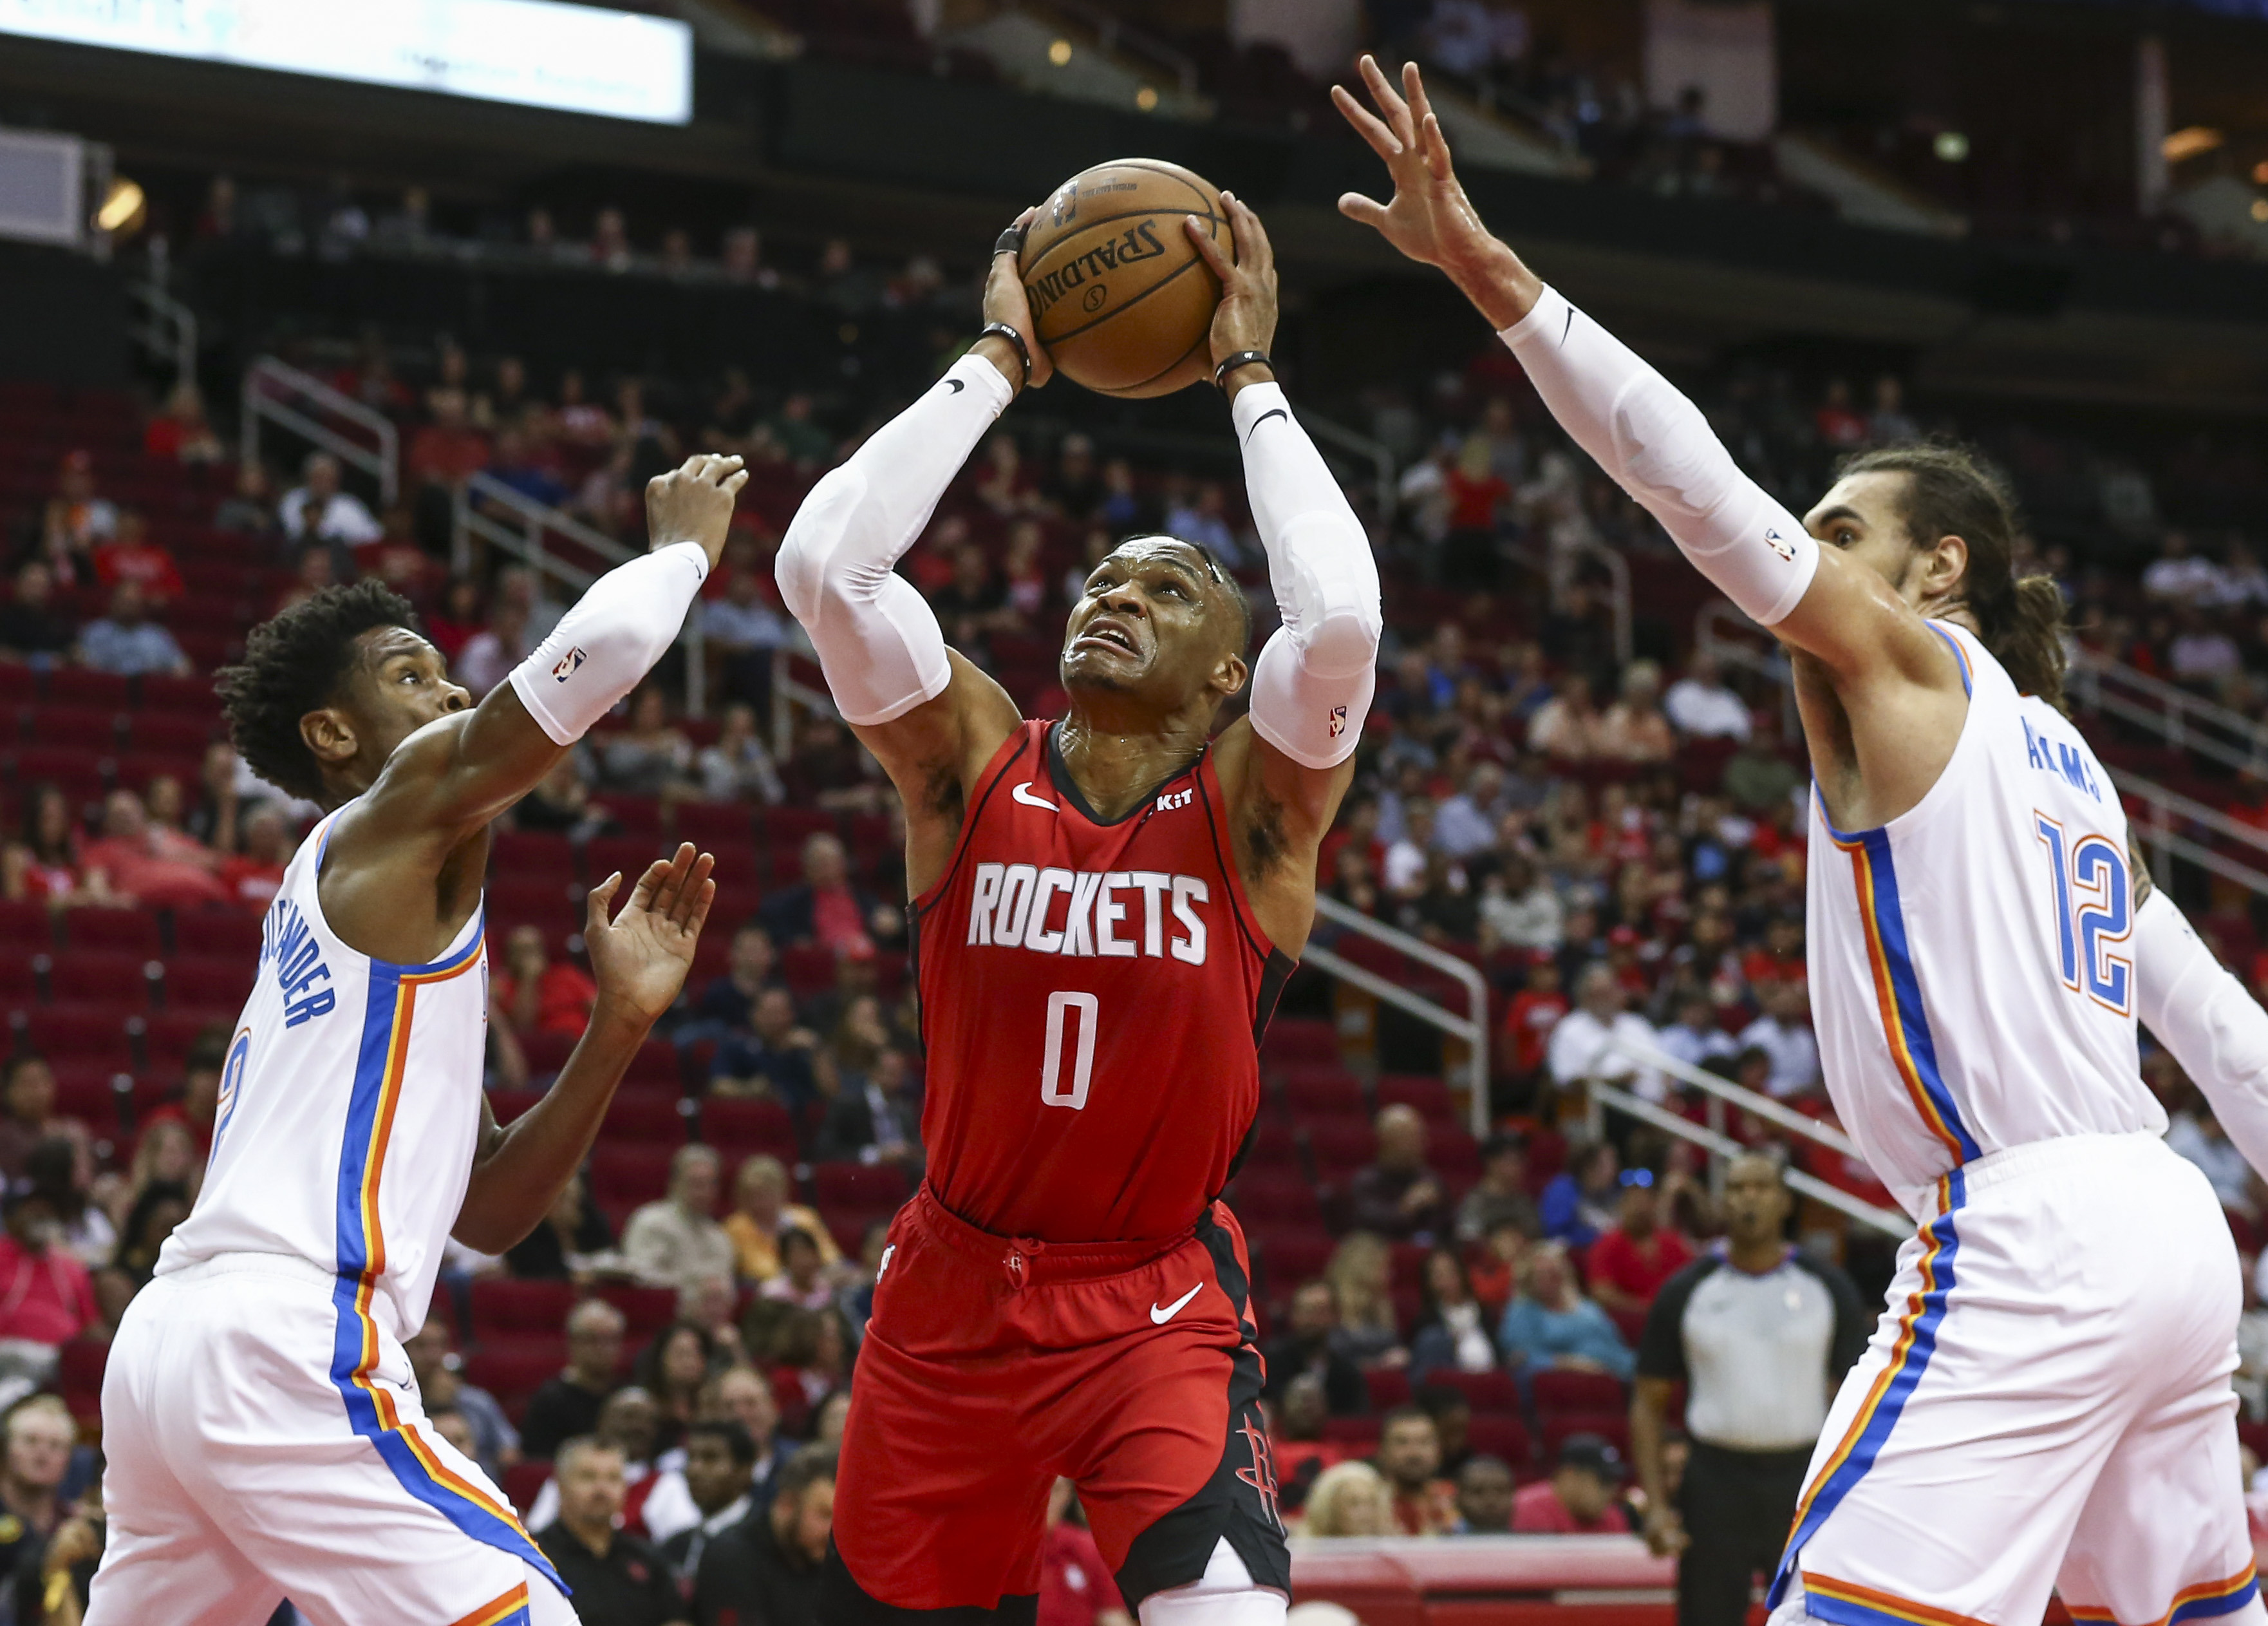 Houston Rockets guard Russell Westbrook attempts to score a basket as Oklahoma City Thunder guard Shai Gilgeous-Alexander and center Steven Adams defend during the first quarter at Toyota Center.